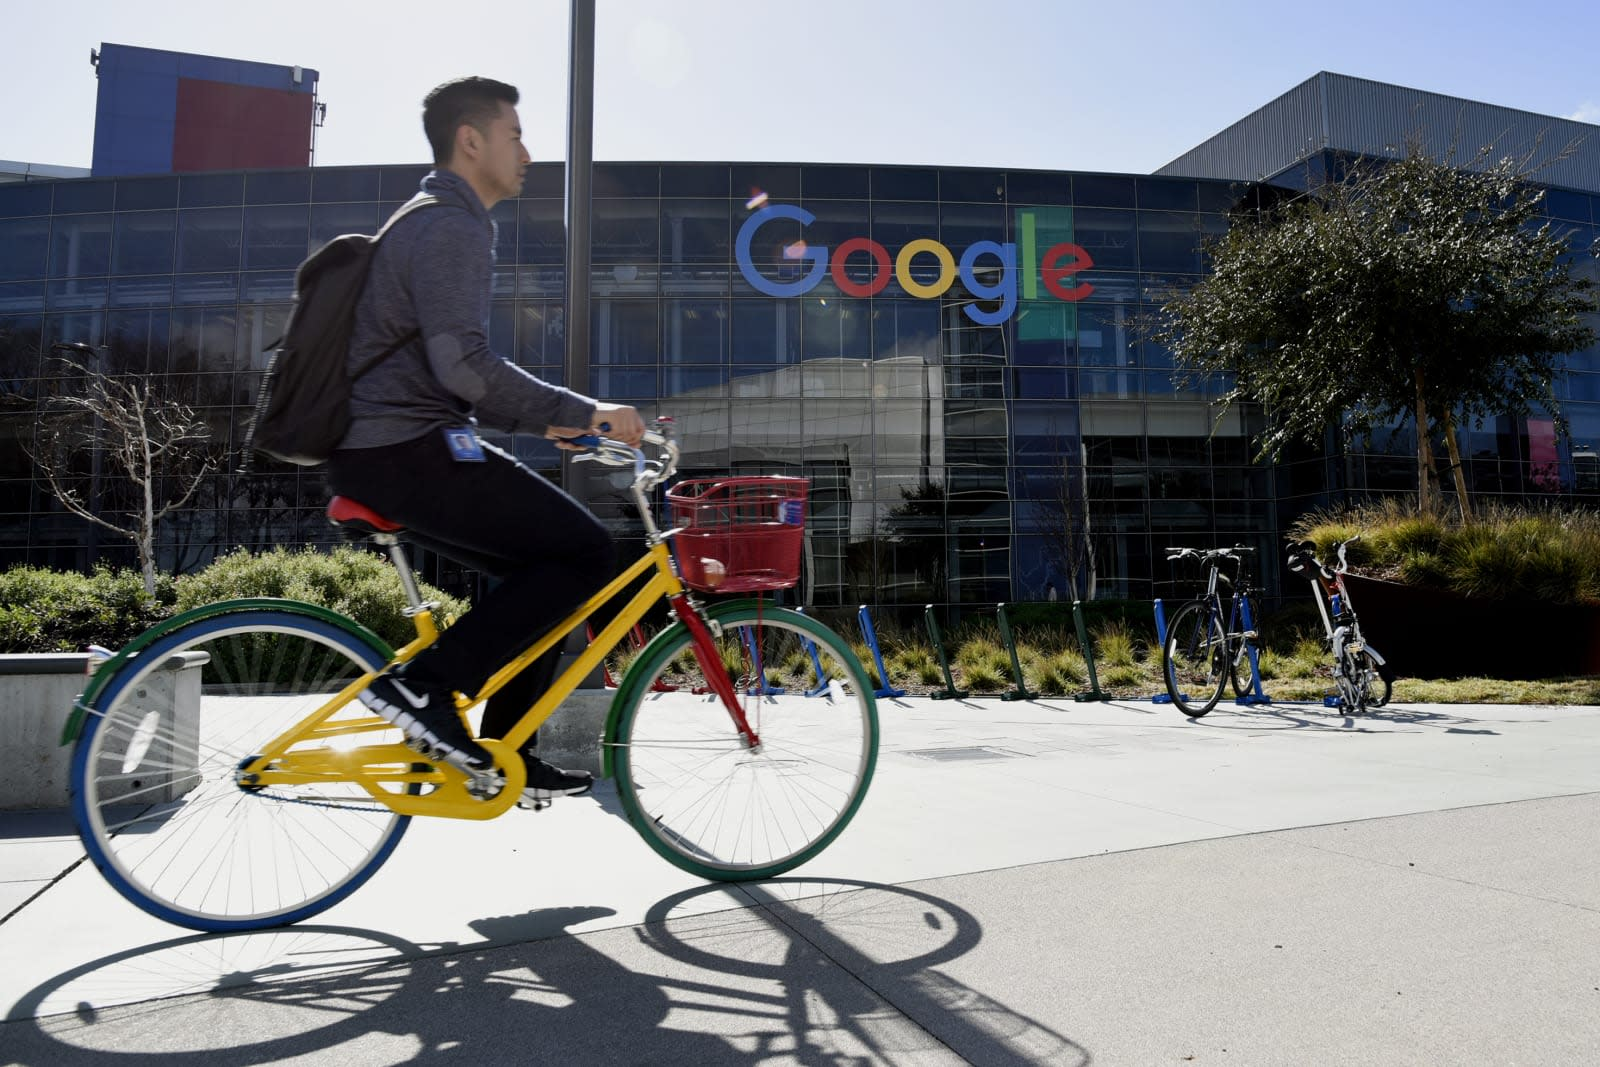 Labor board says Google legally fired diversity memo writer